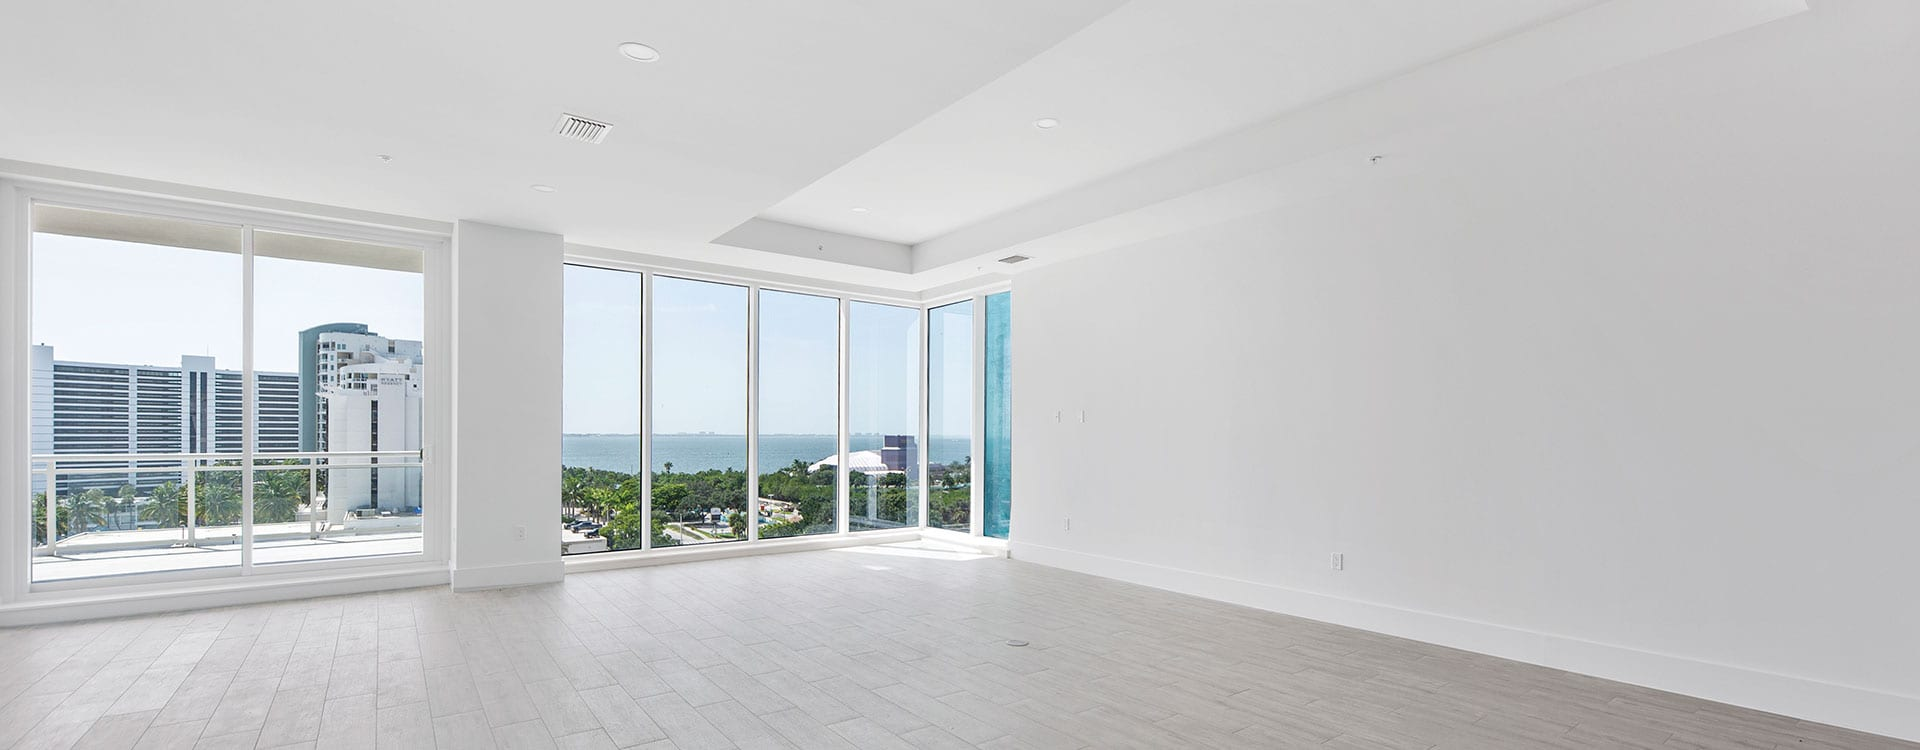 BLVD Sarasota Residence 803 Great Room with a v